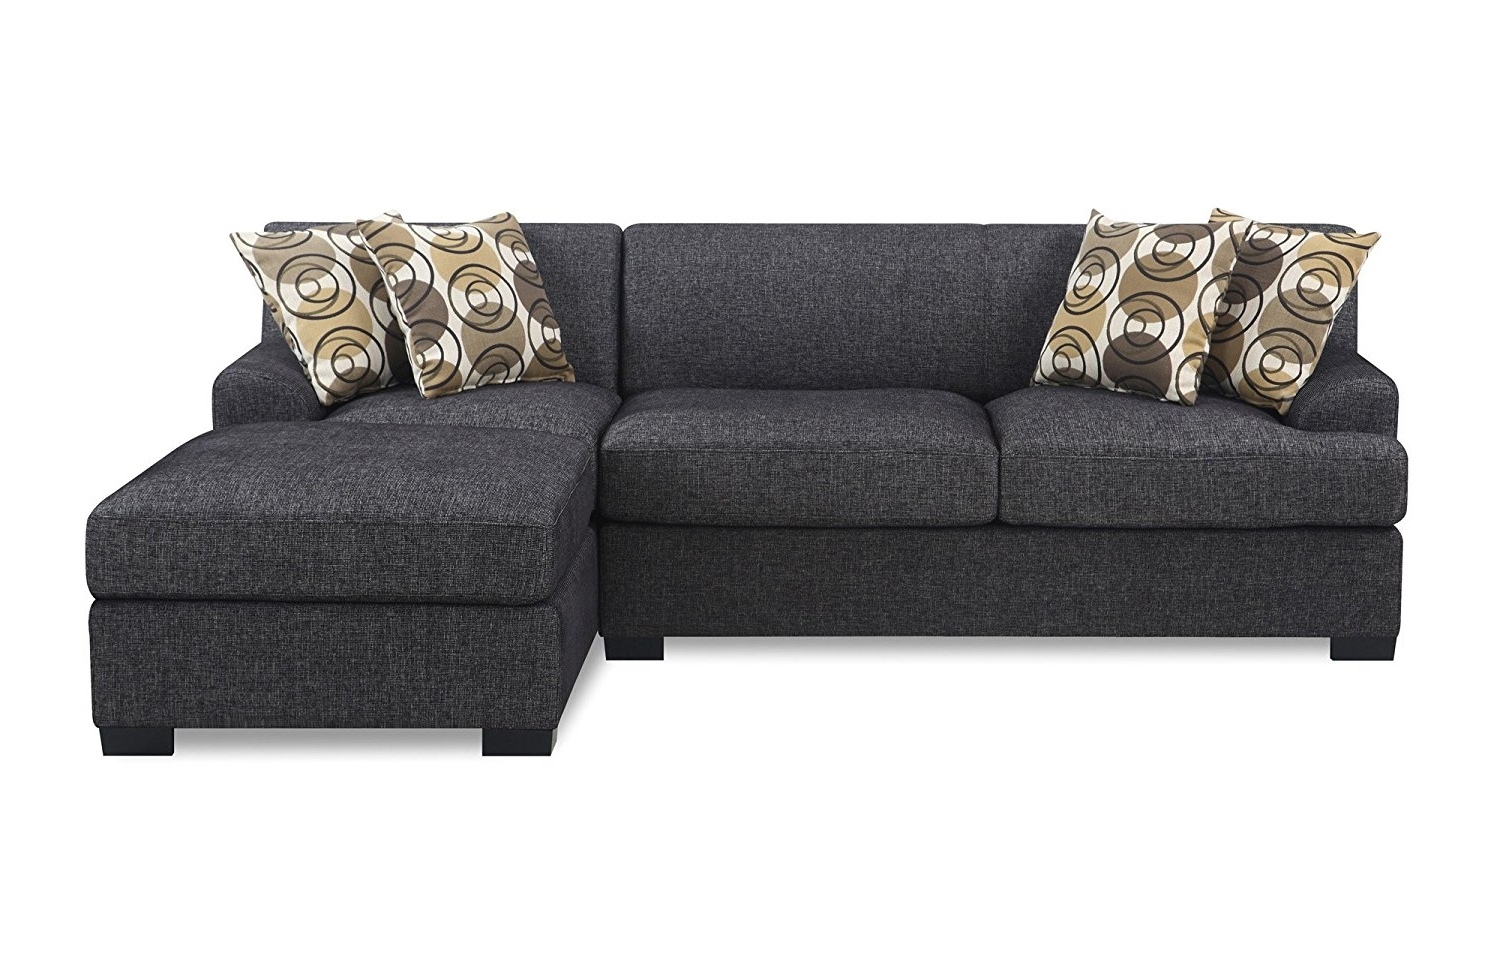 Best And Newest Amazon: Bobkona Benford 2 Piece Chaise Loveseat Sectional Sofa Within Loveseats With Chaise Lounge (View 3 of 15)